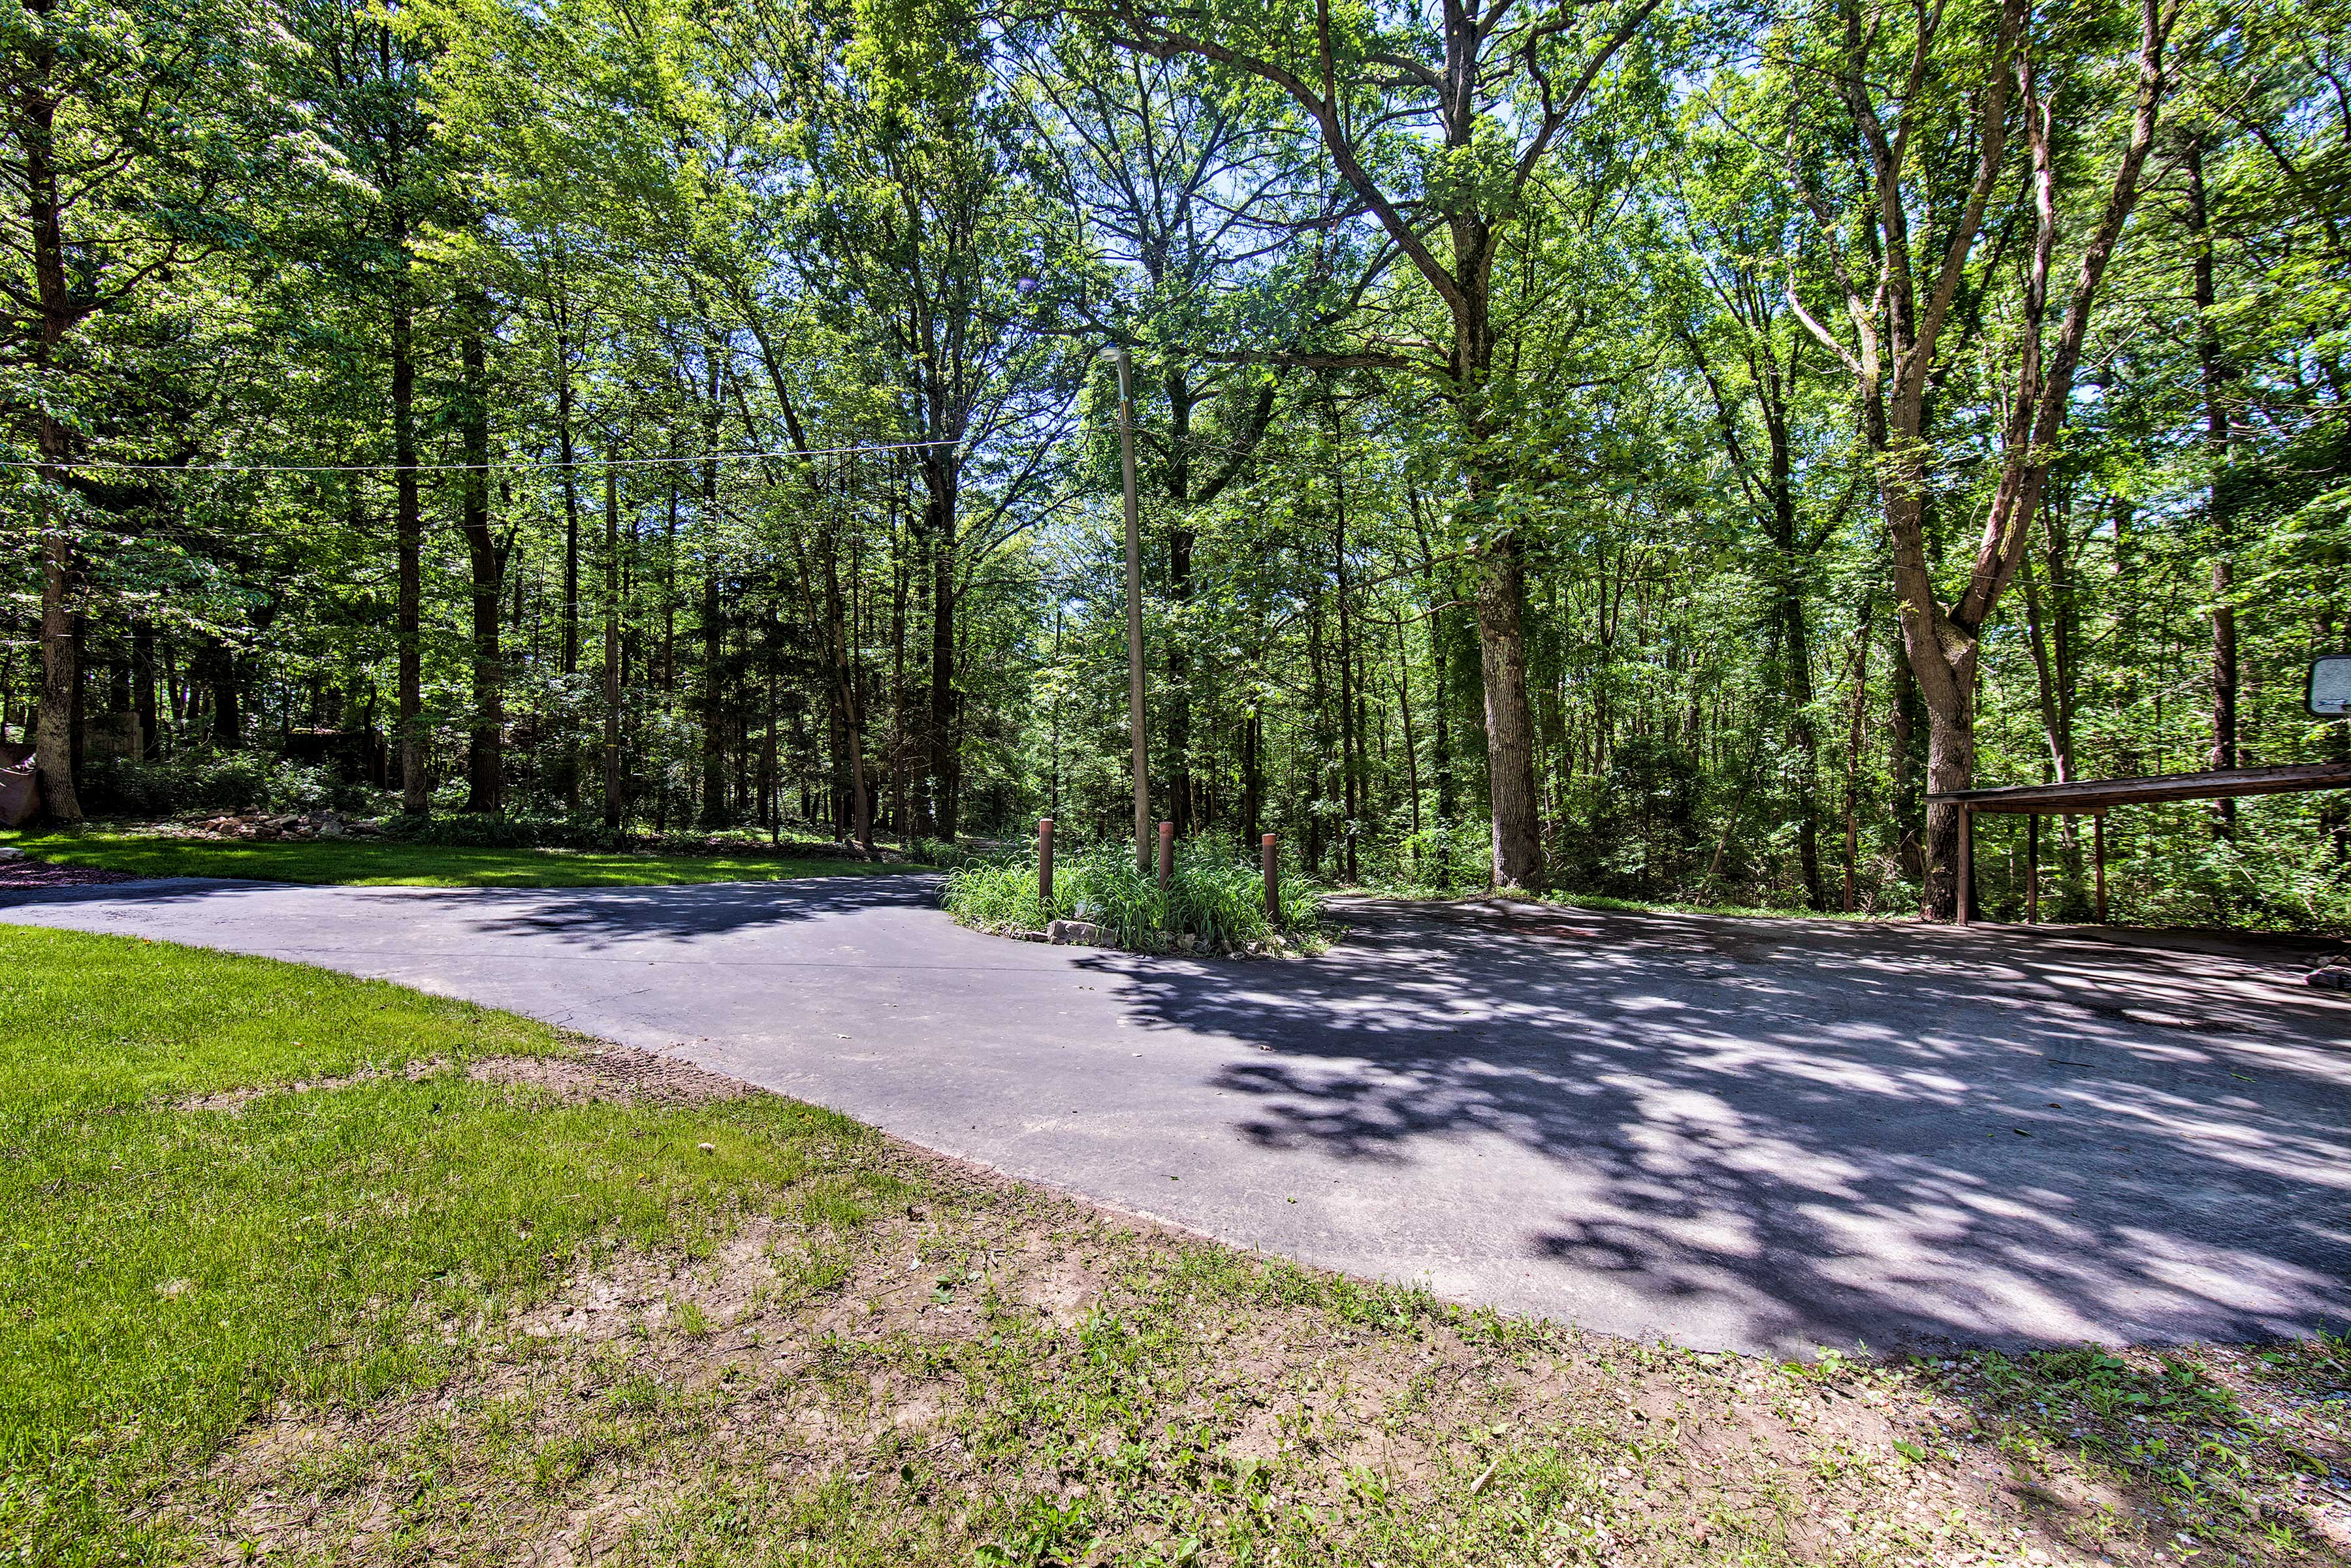 Ample driveway parking is available on site.